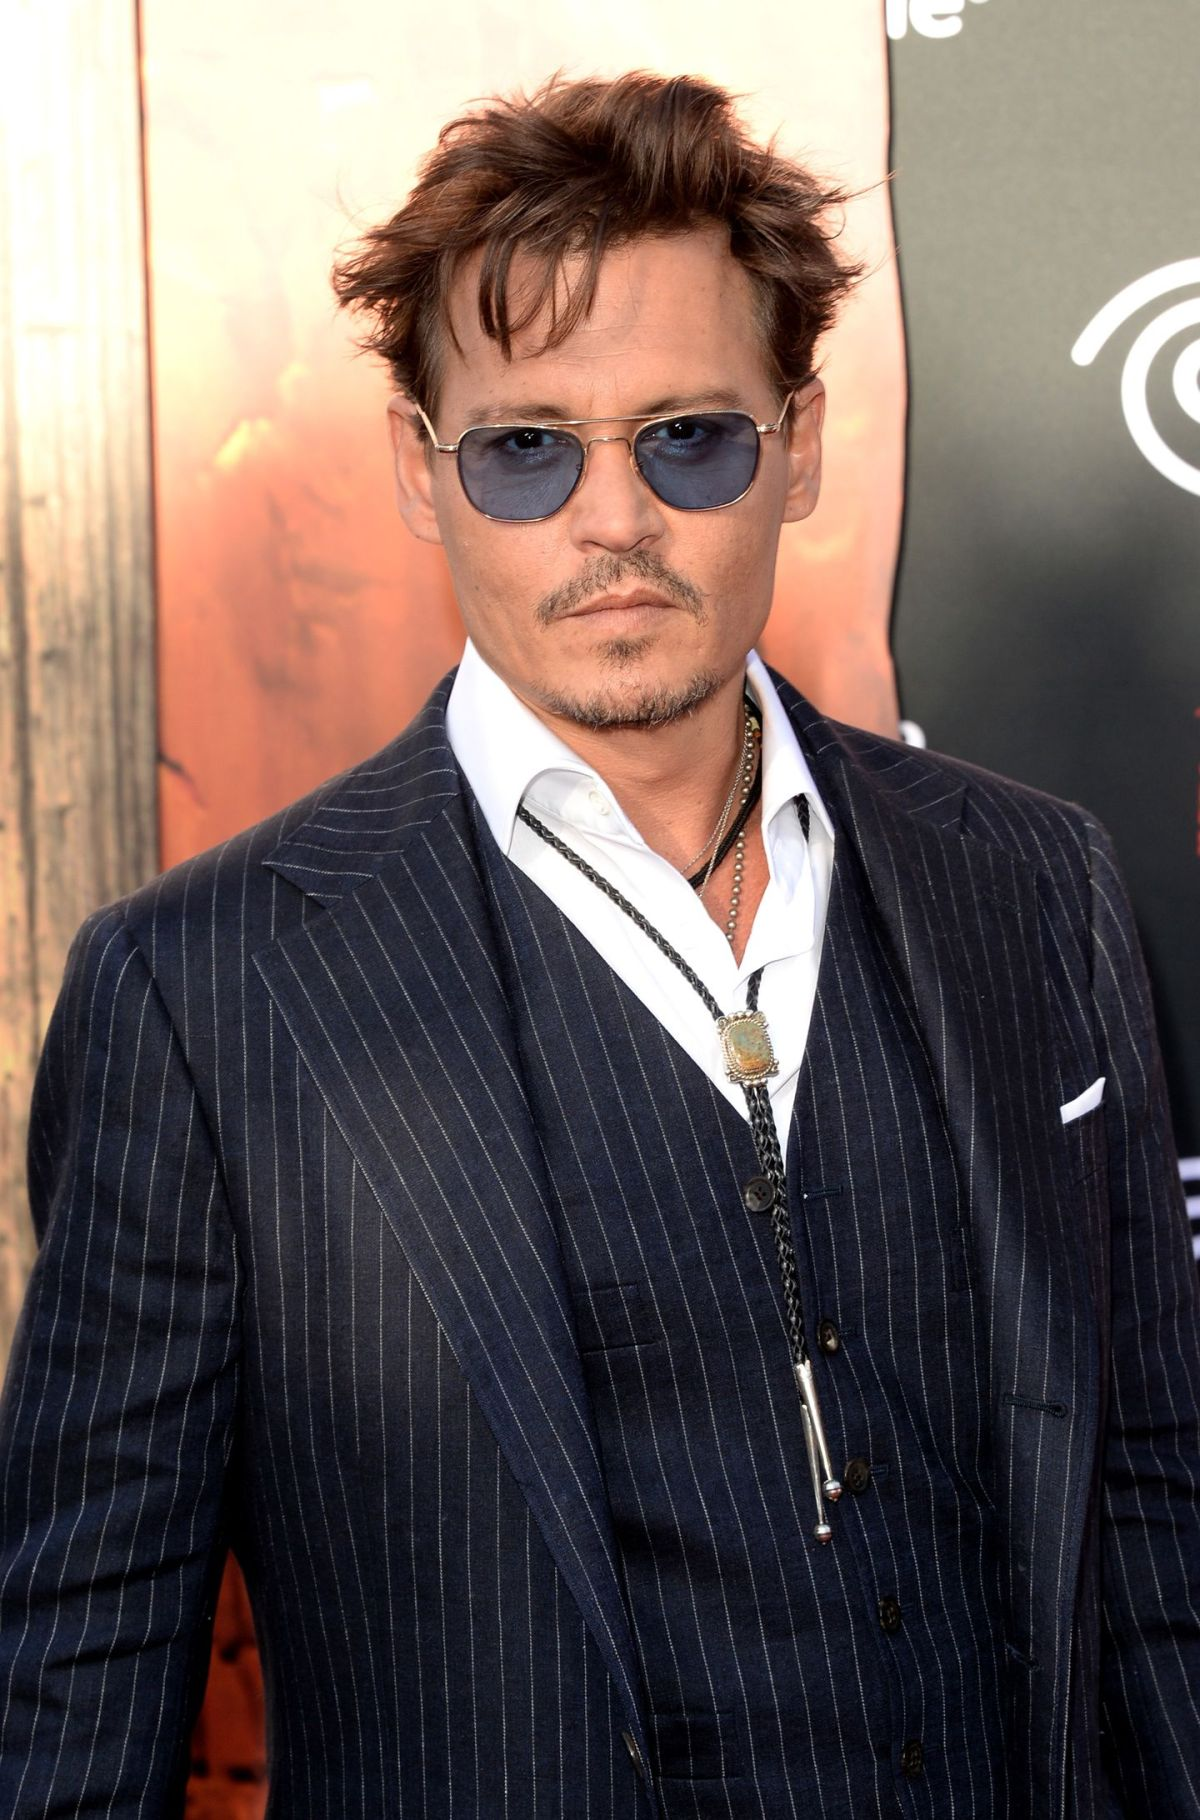 What happens when an actor turns 50? Ask Johnny Depp - The Boston Globe